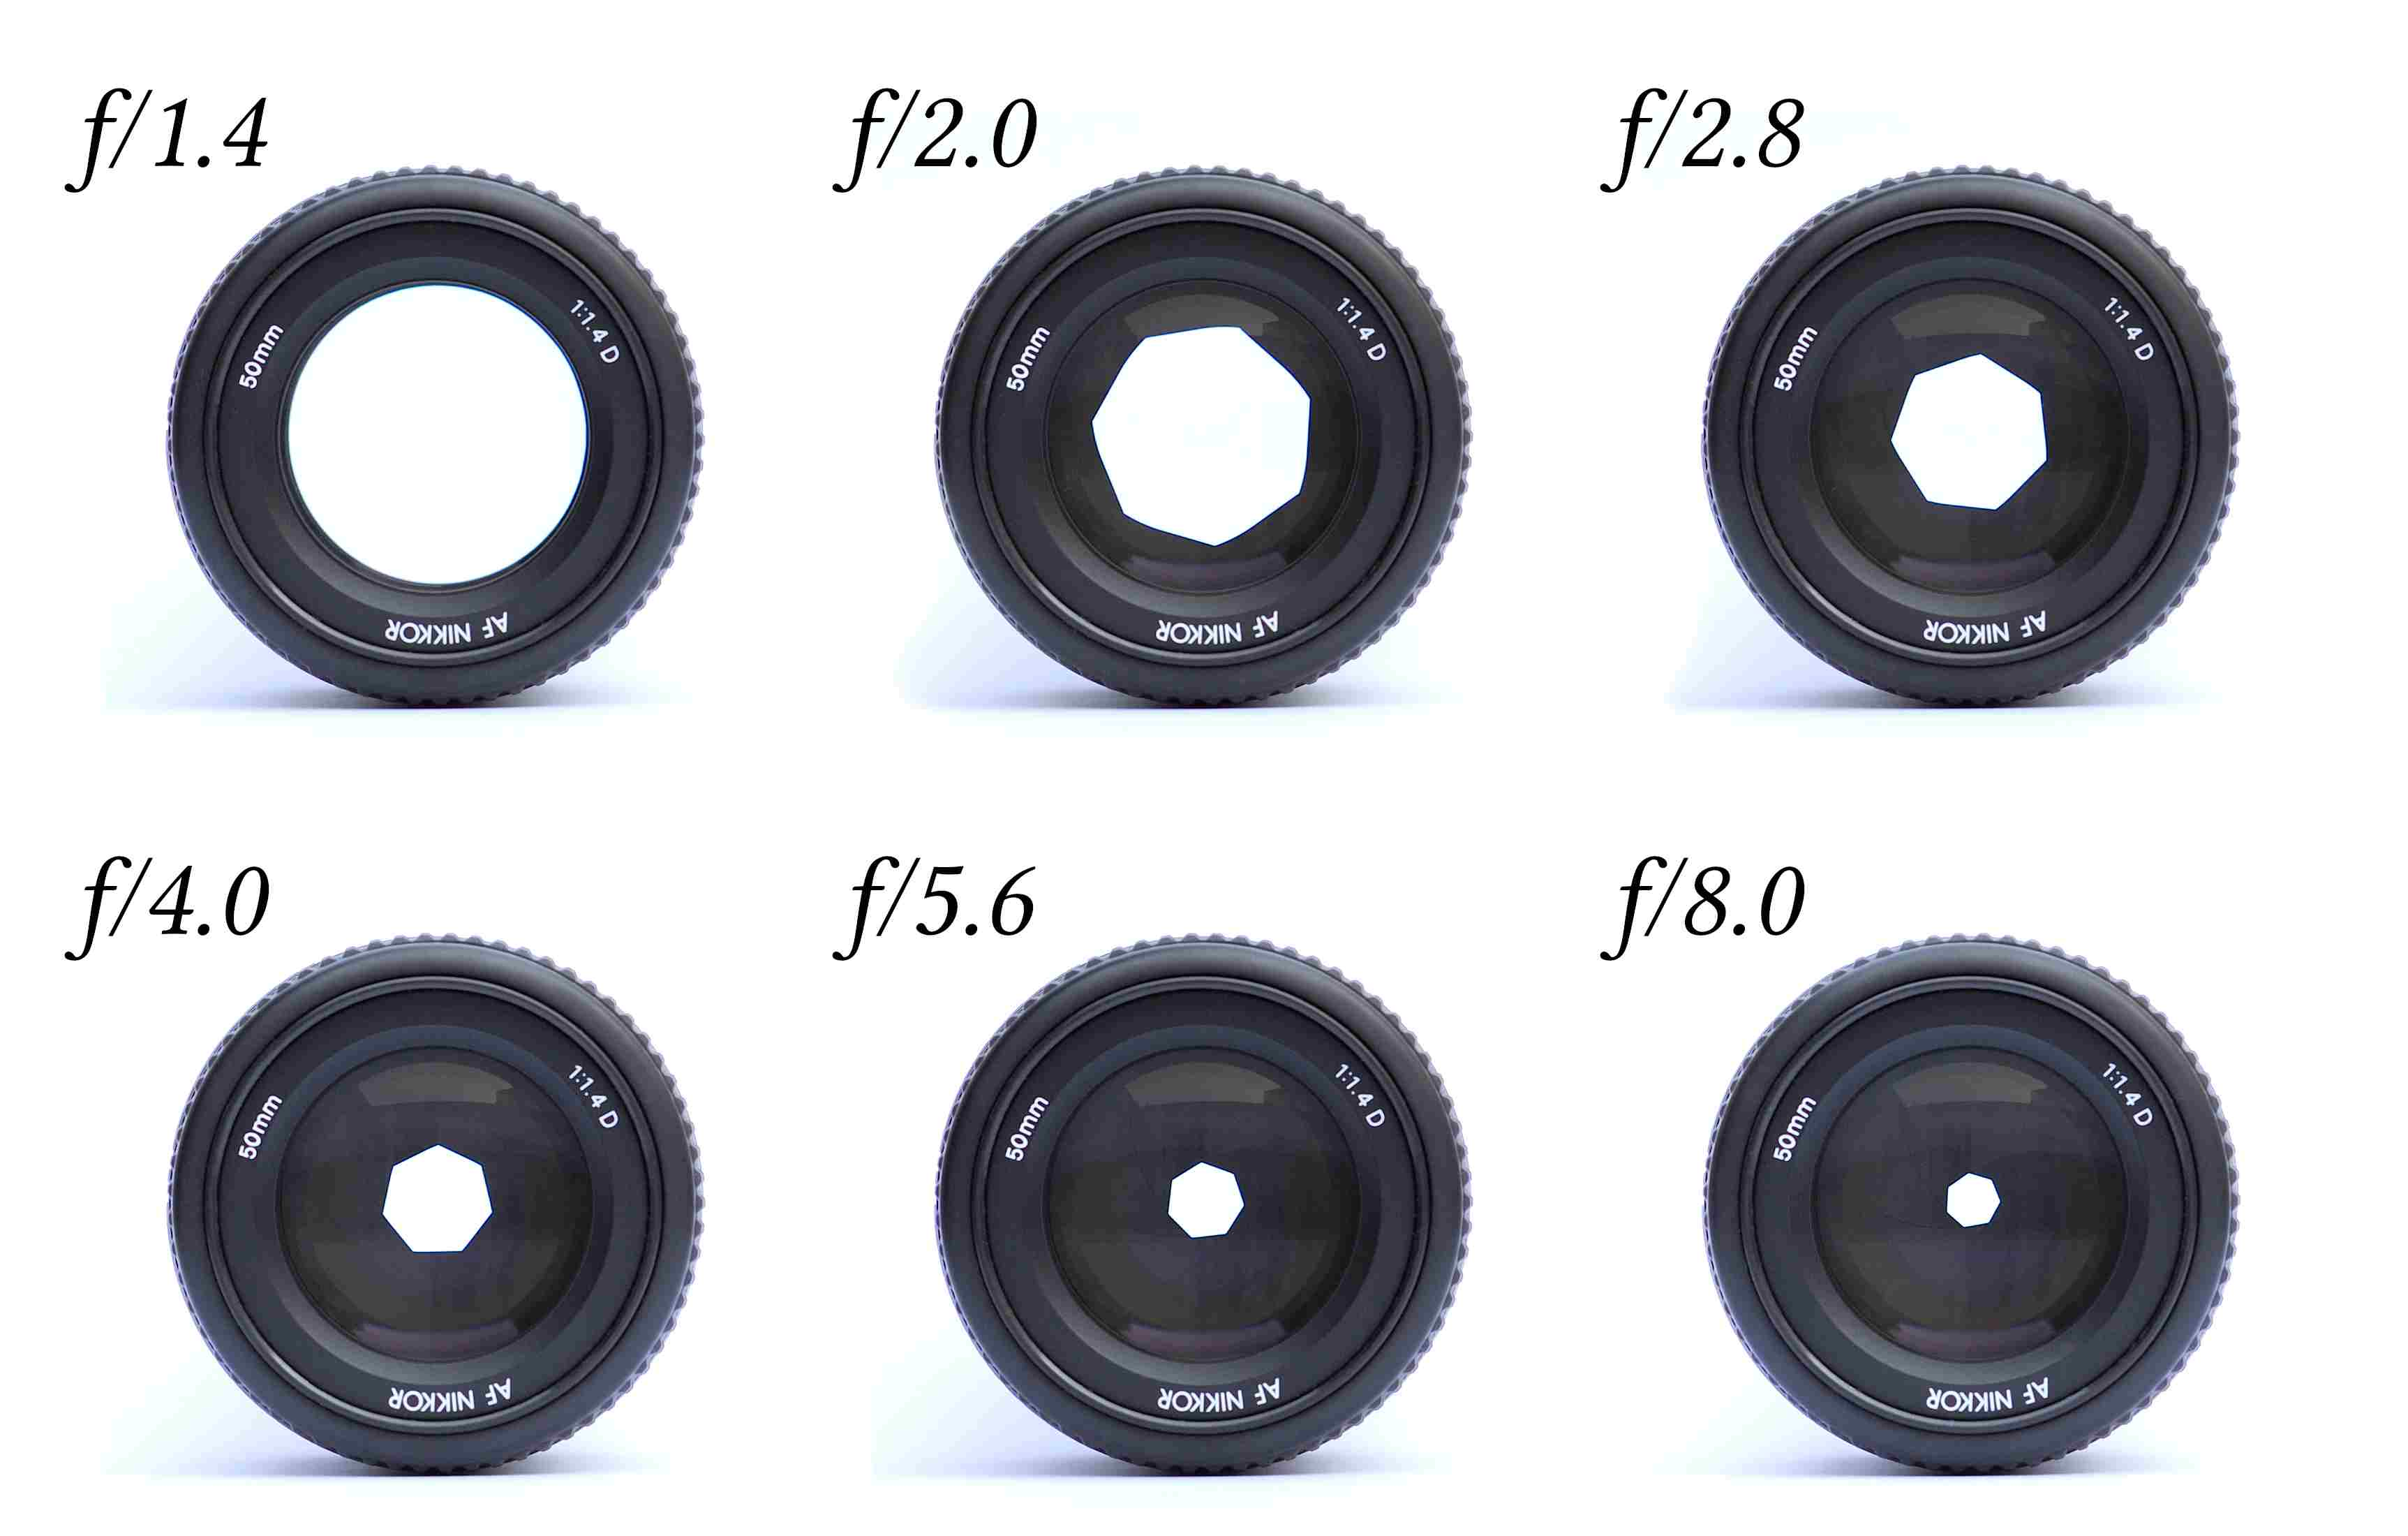 Camera lenses with different aperture sizes and f-stop numbers